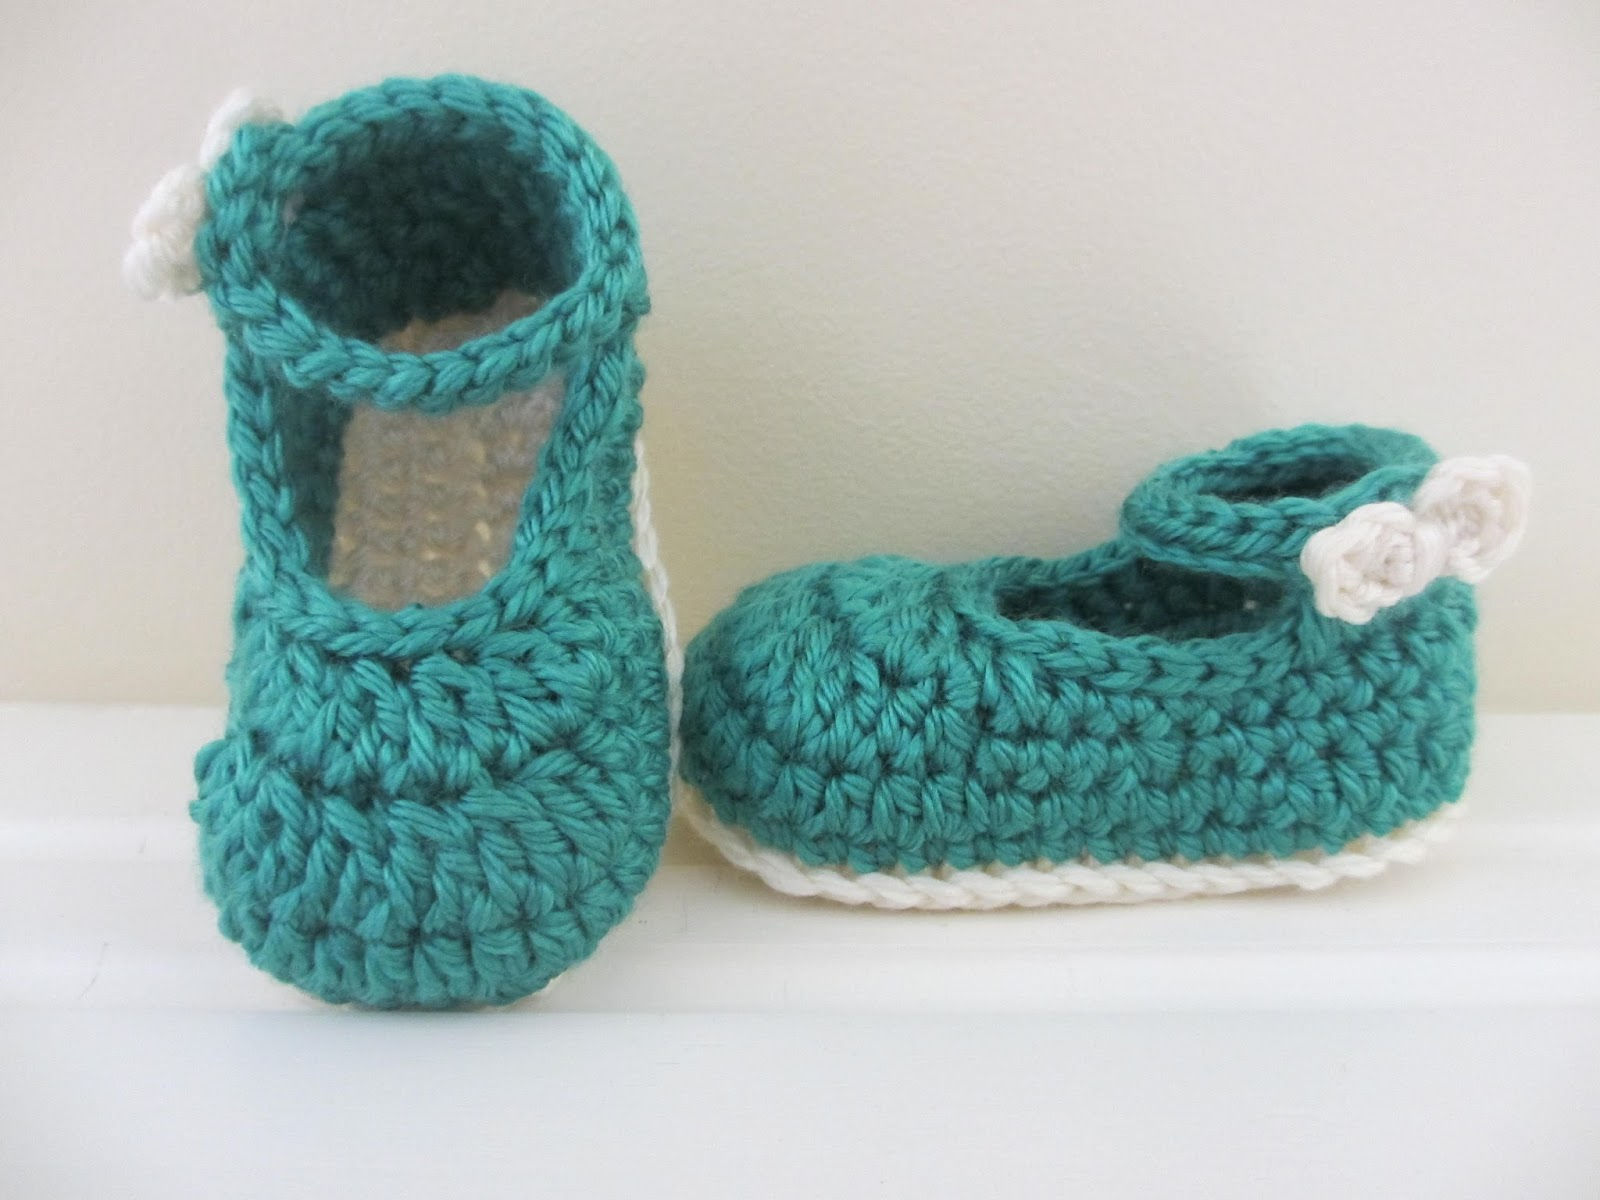 Free Crochet Pattern For Mary Jane Baby Slippers : Crochet Mary Jane Baby Slippers Pattern (FREE) BeesDIY.com